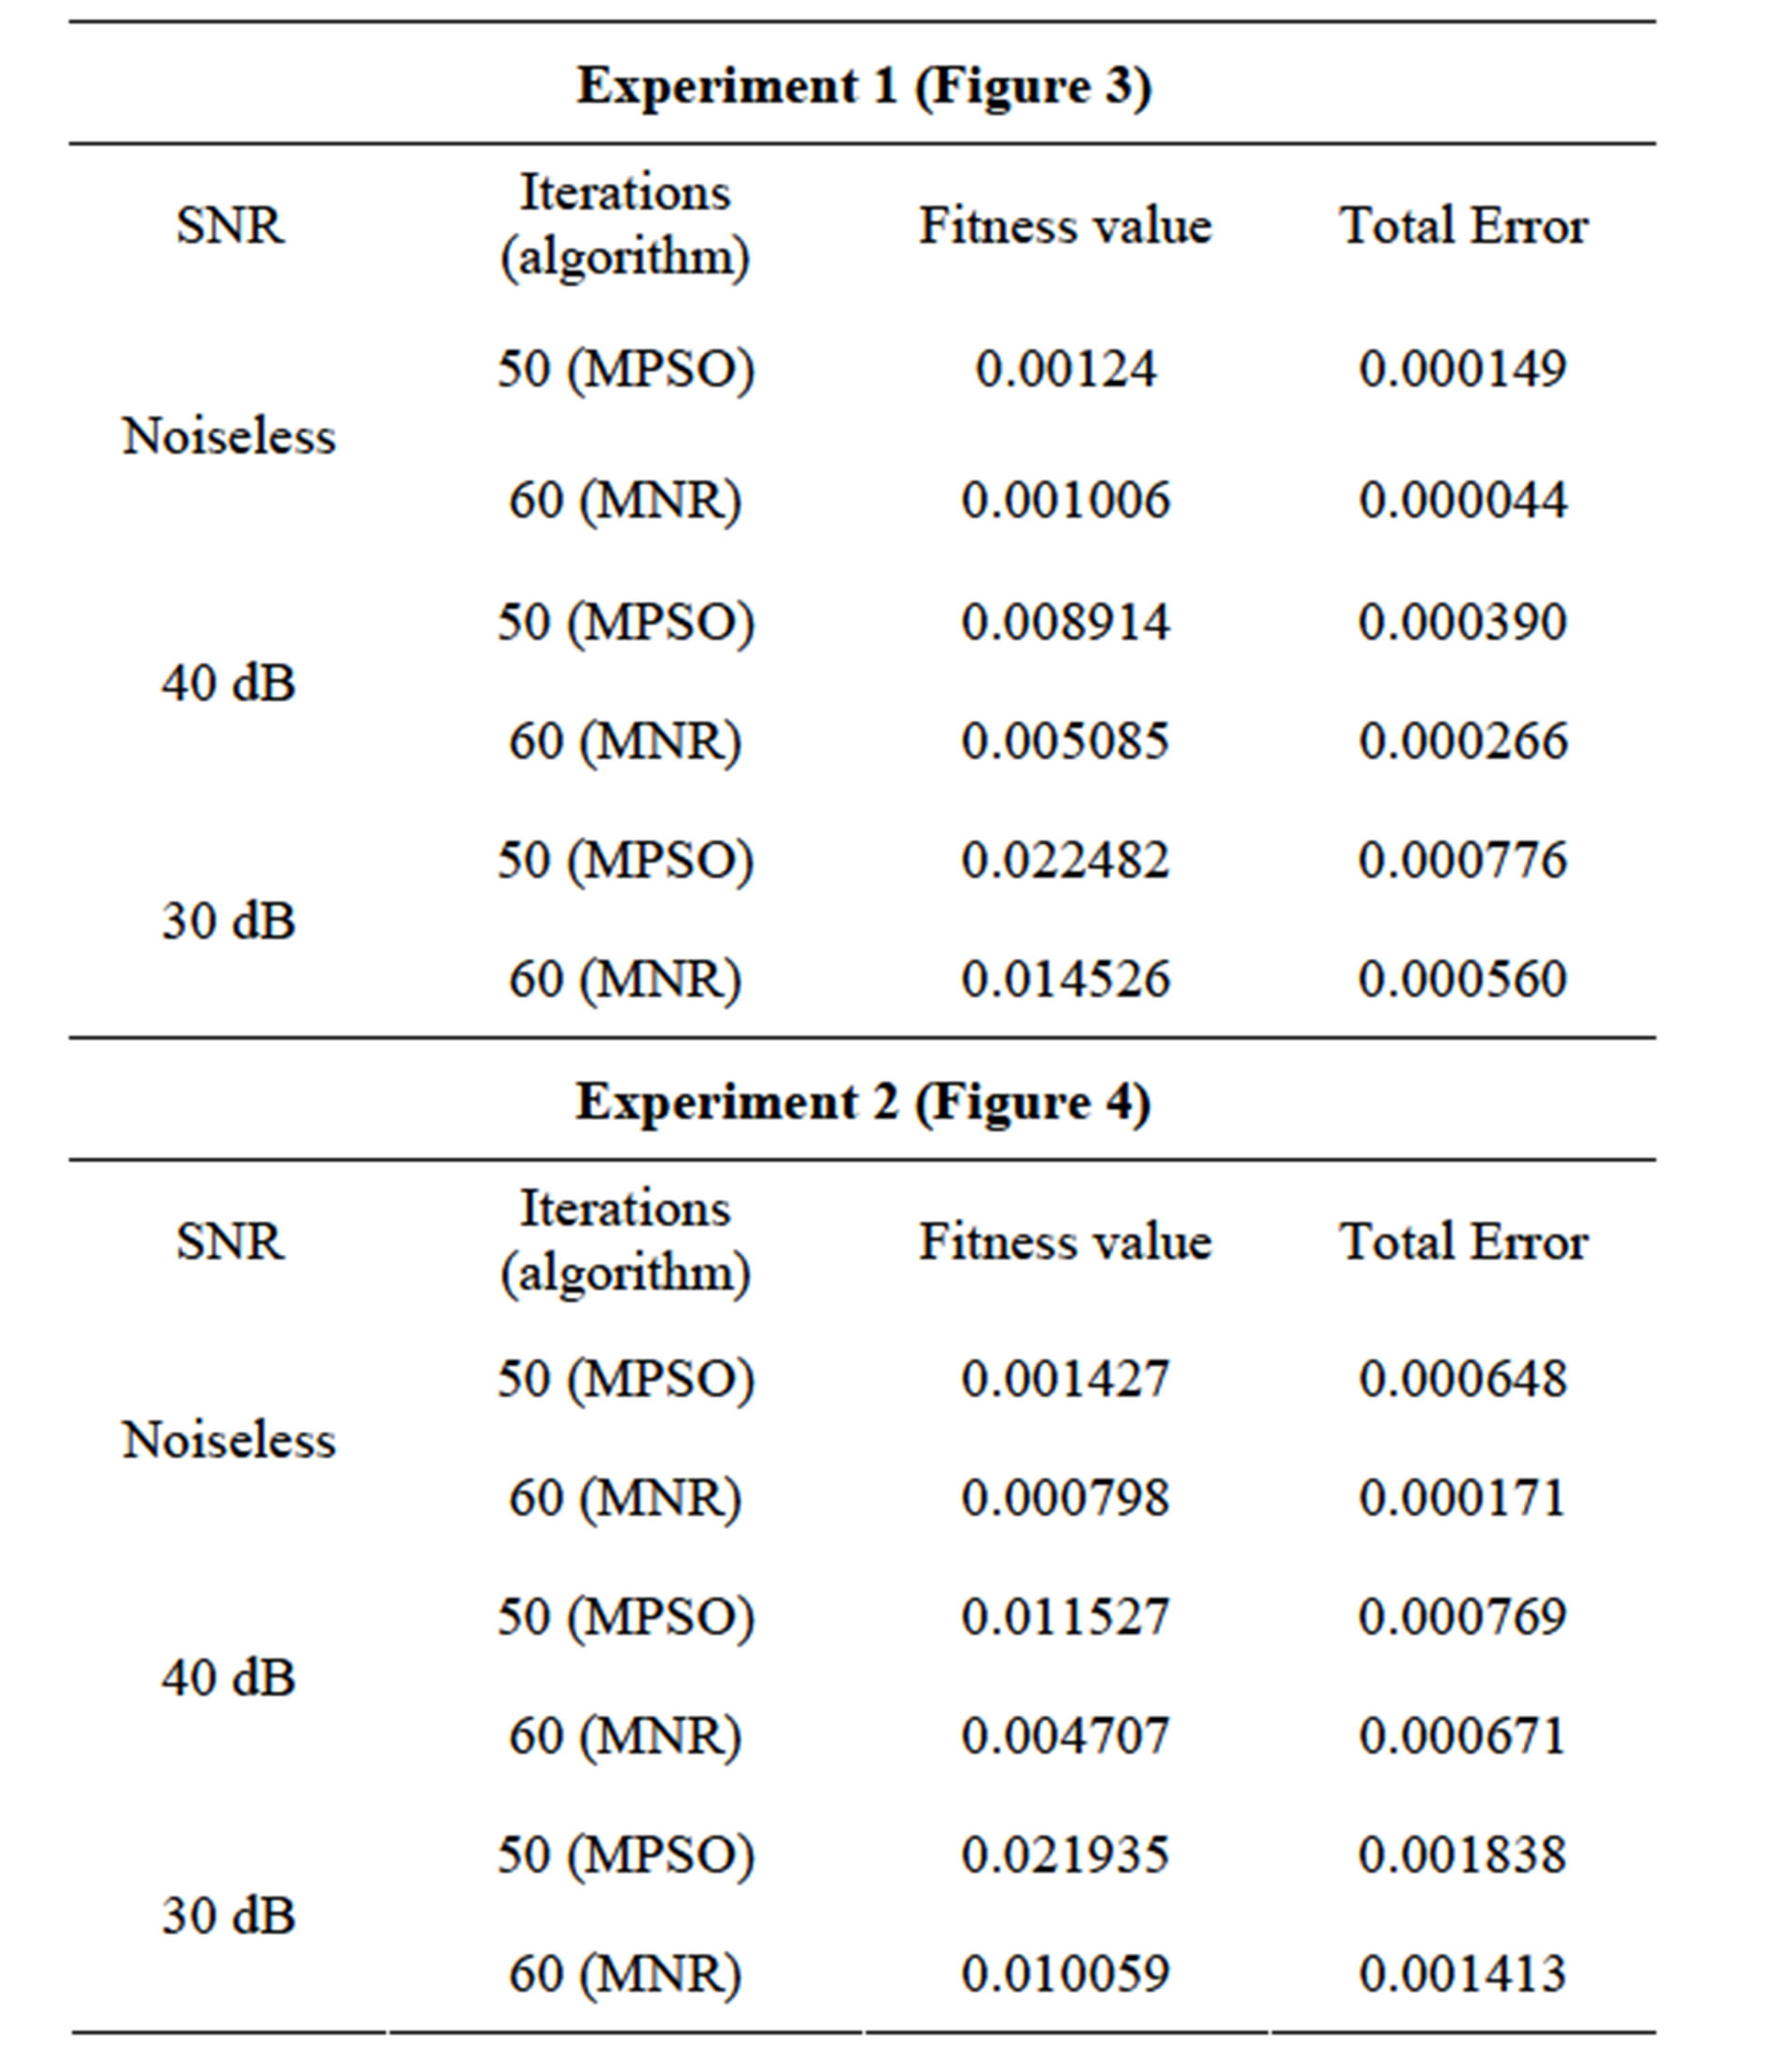 An Influence of the Noise on the Imaging Algorithm in the